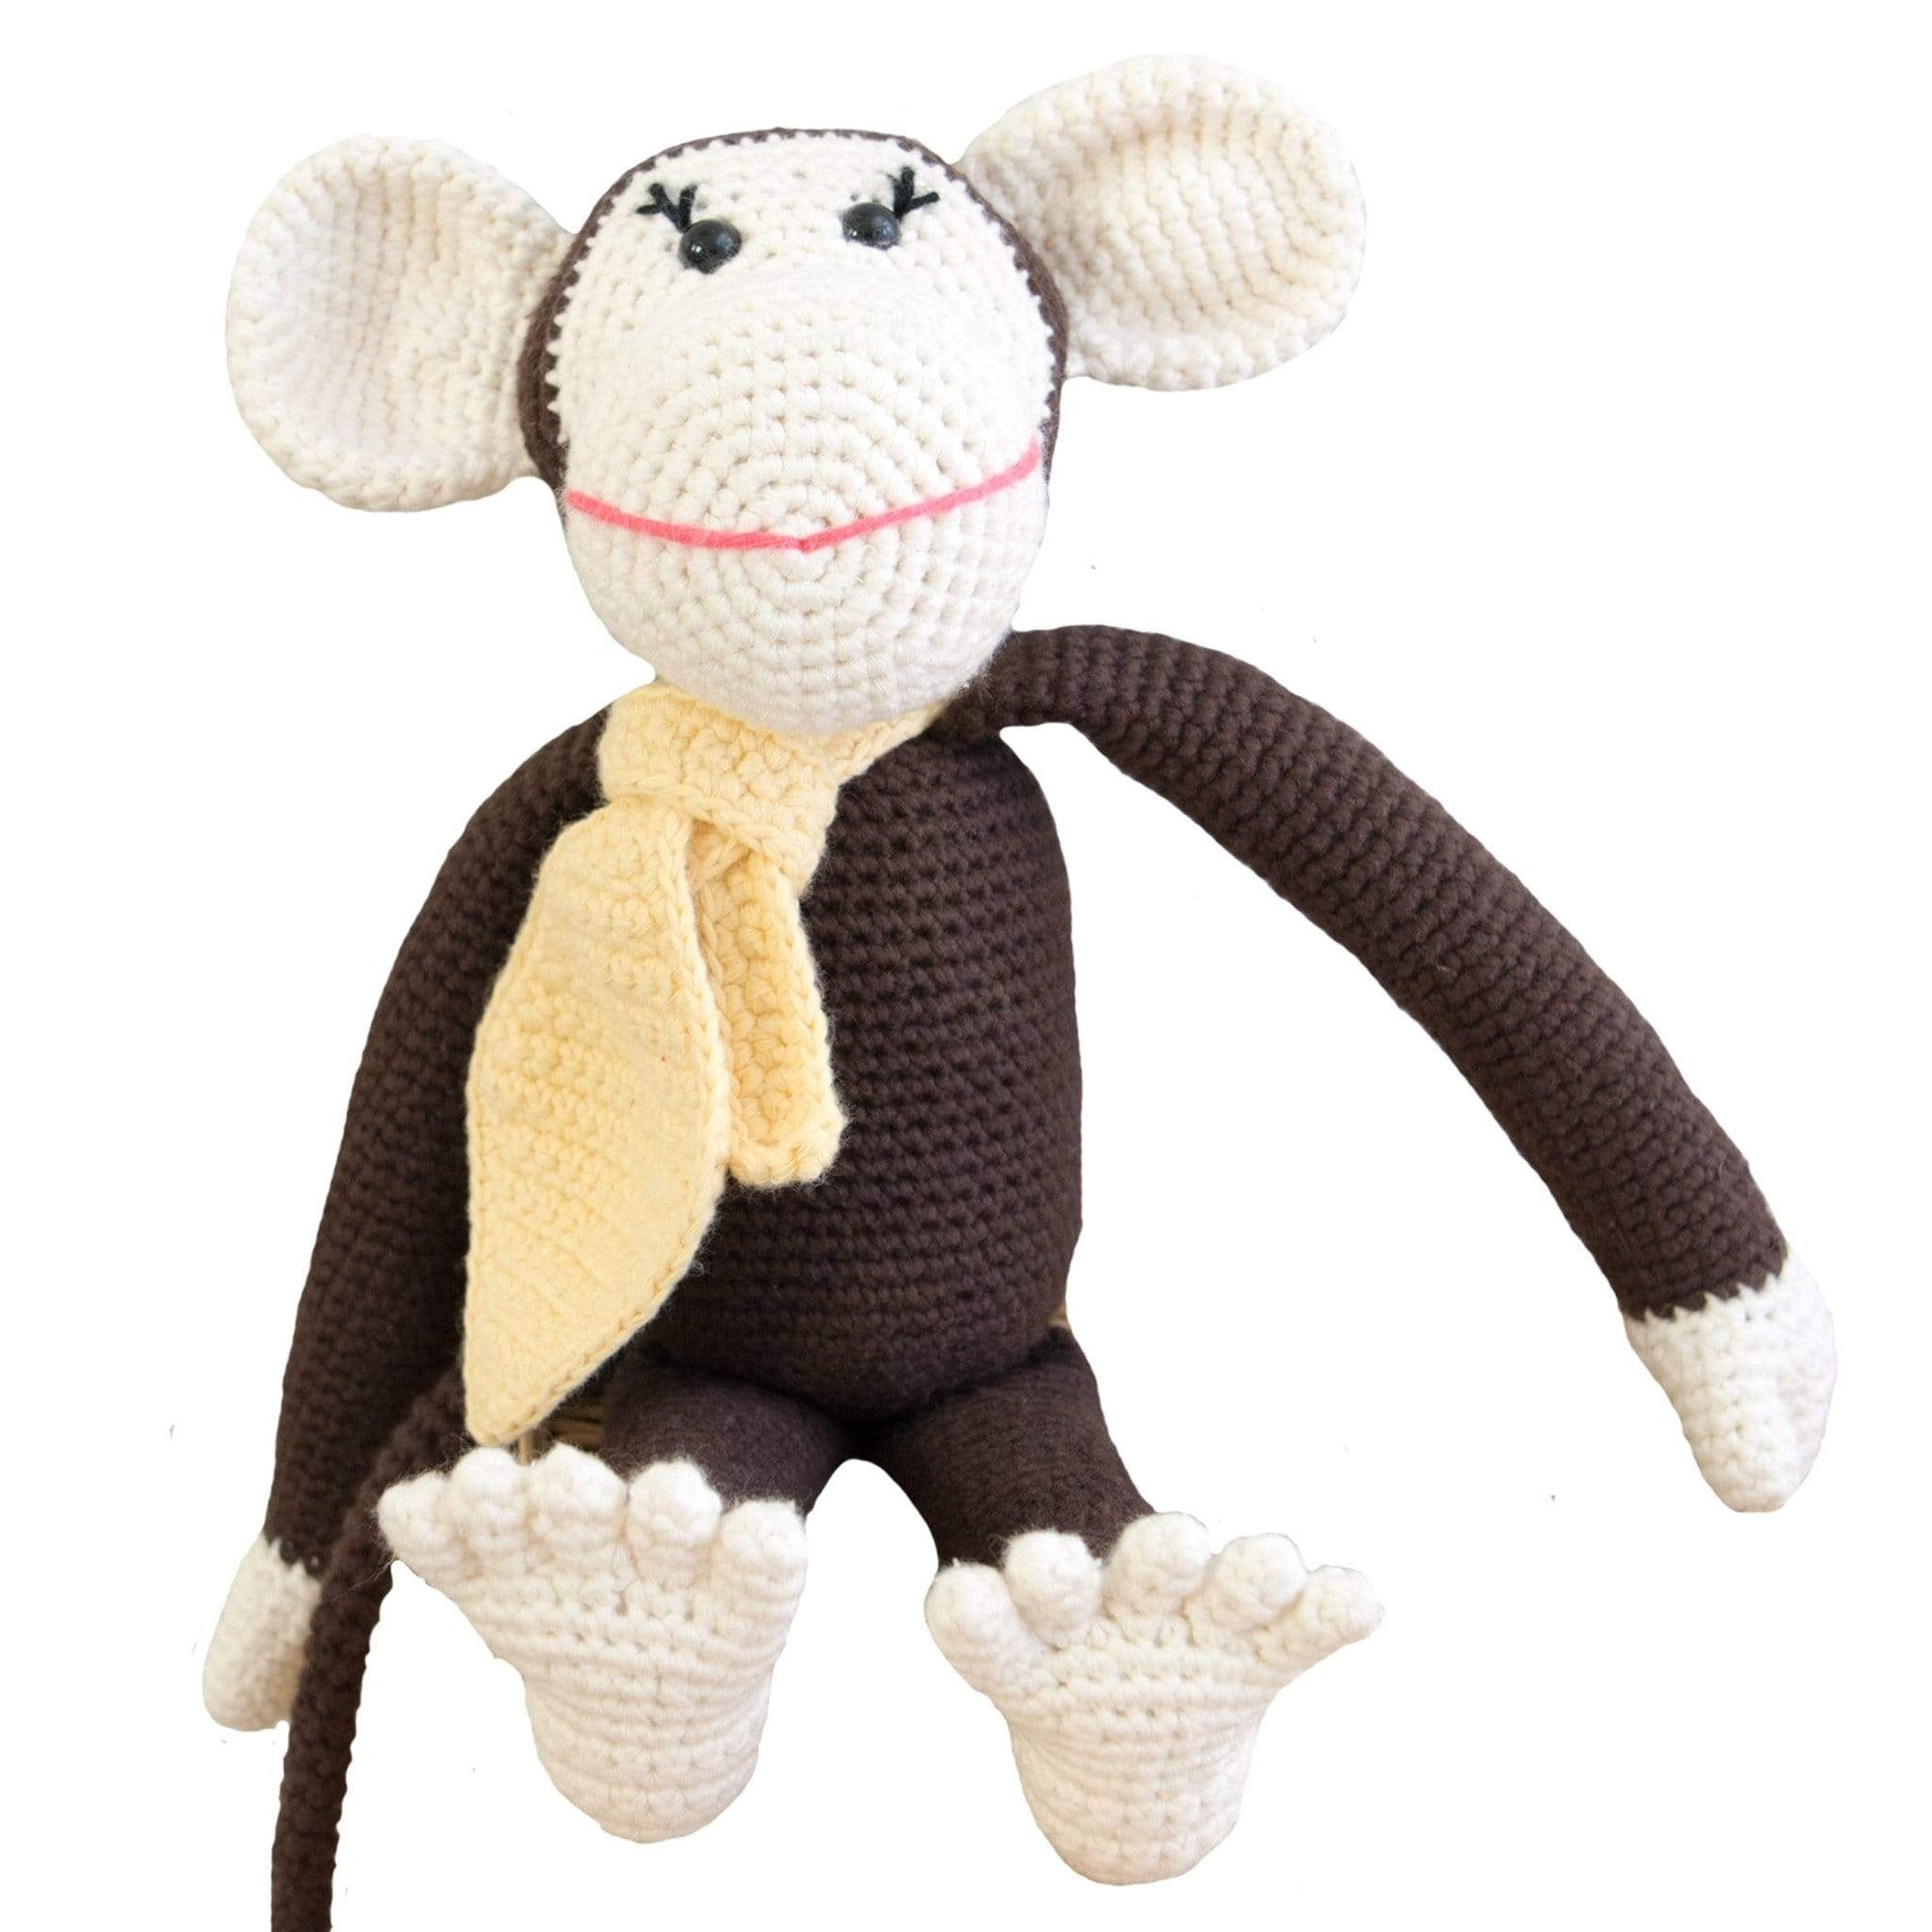 bebemoss.com stuffed animal Momo the monkey - brown handmade by moms  gifts with purpose